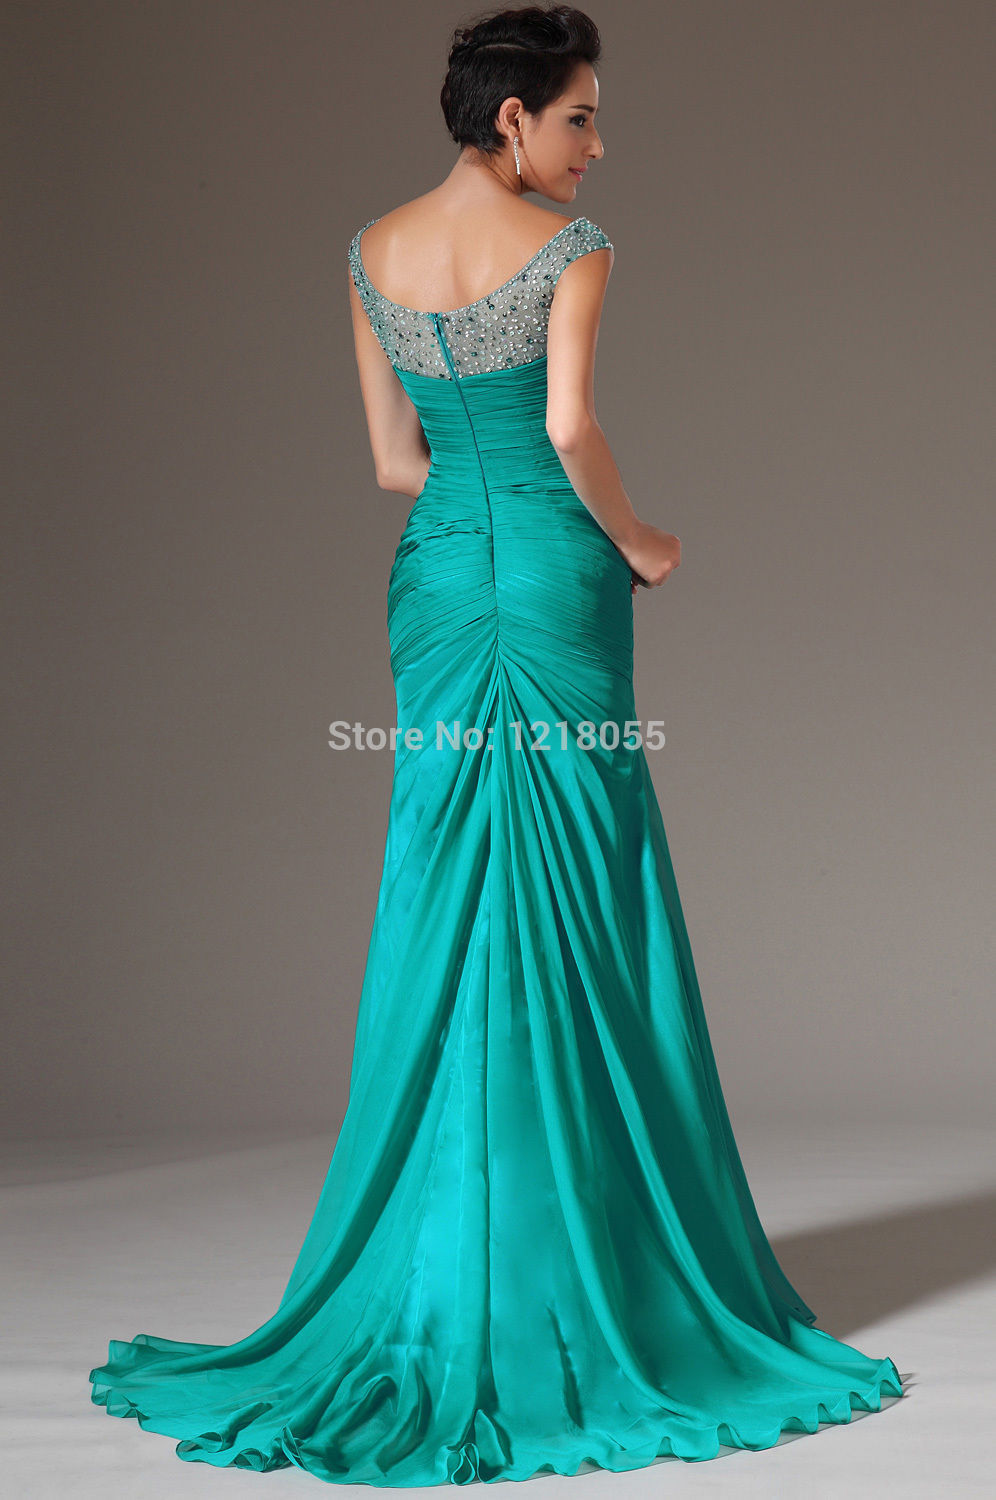 Buy Evening Dress Online Jessica Howard Dresses Gold Shop One ... 077accc35e65